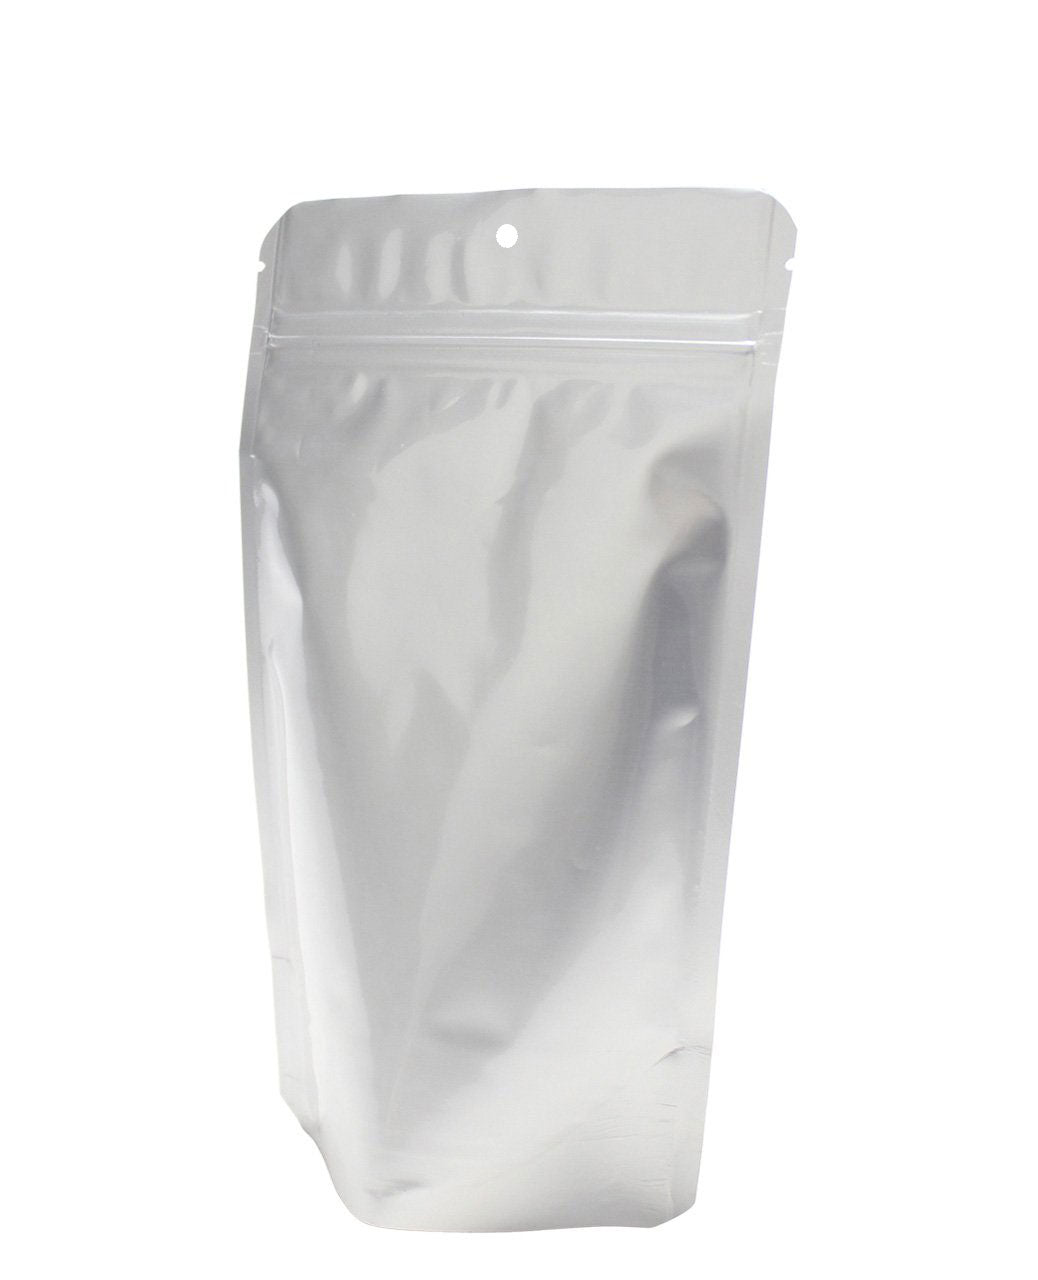 Stand Up Pouches - 5 x 8 x 3 - All Silver - Hang Hole 1,000pcs